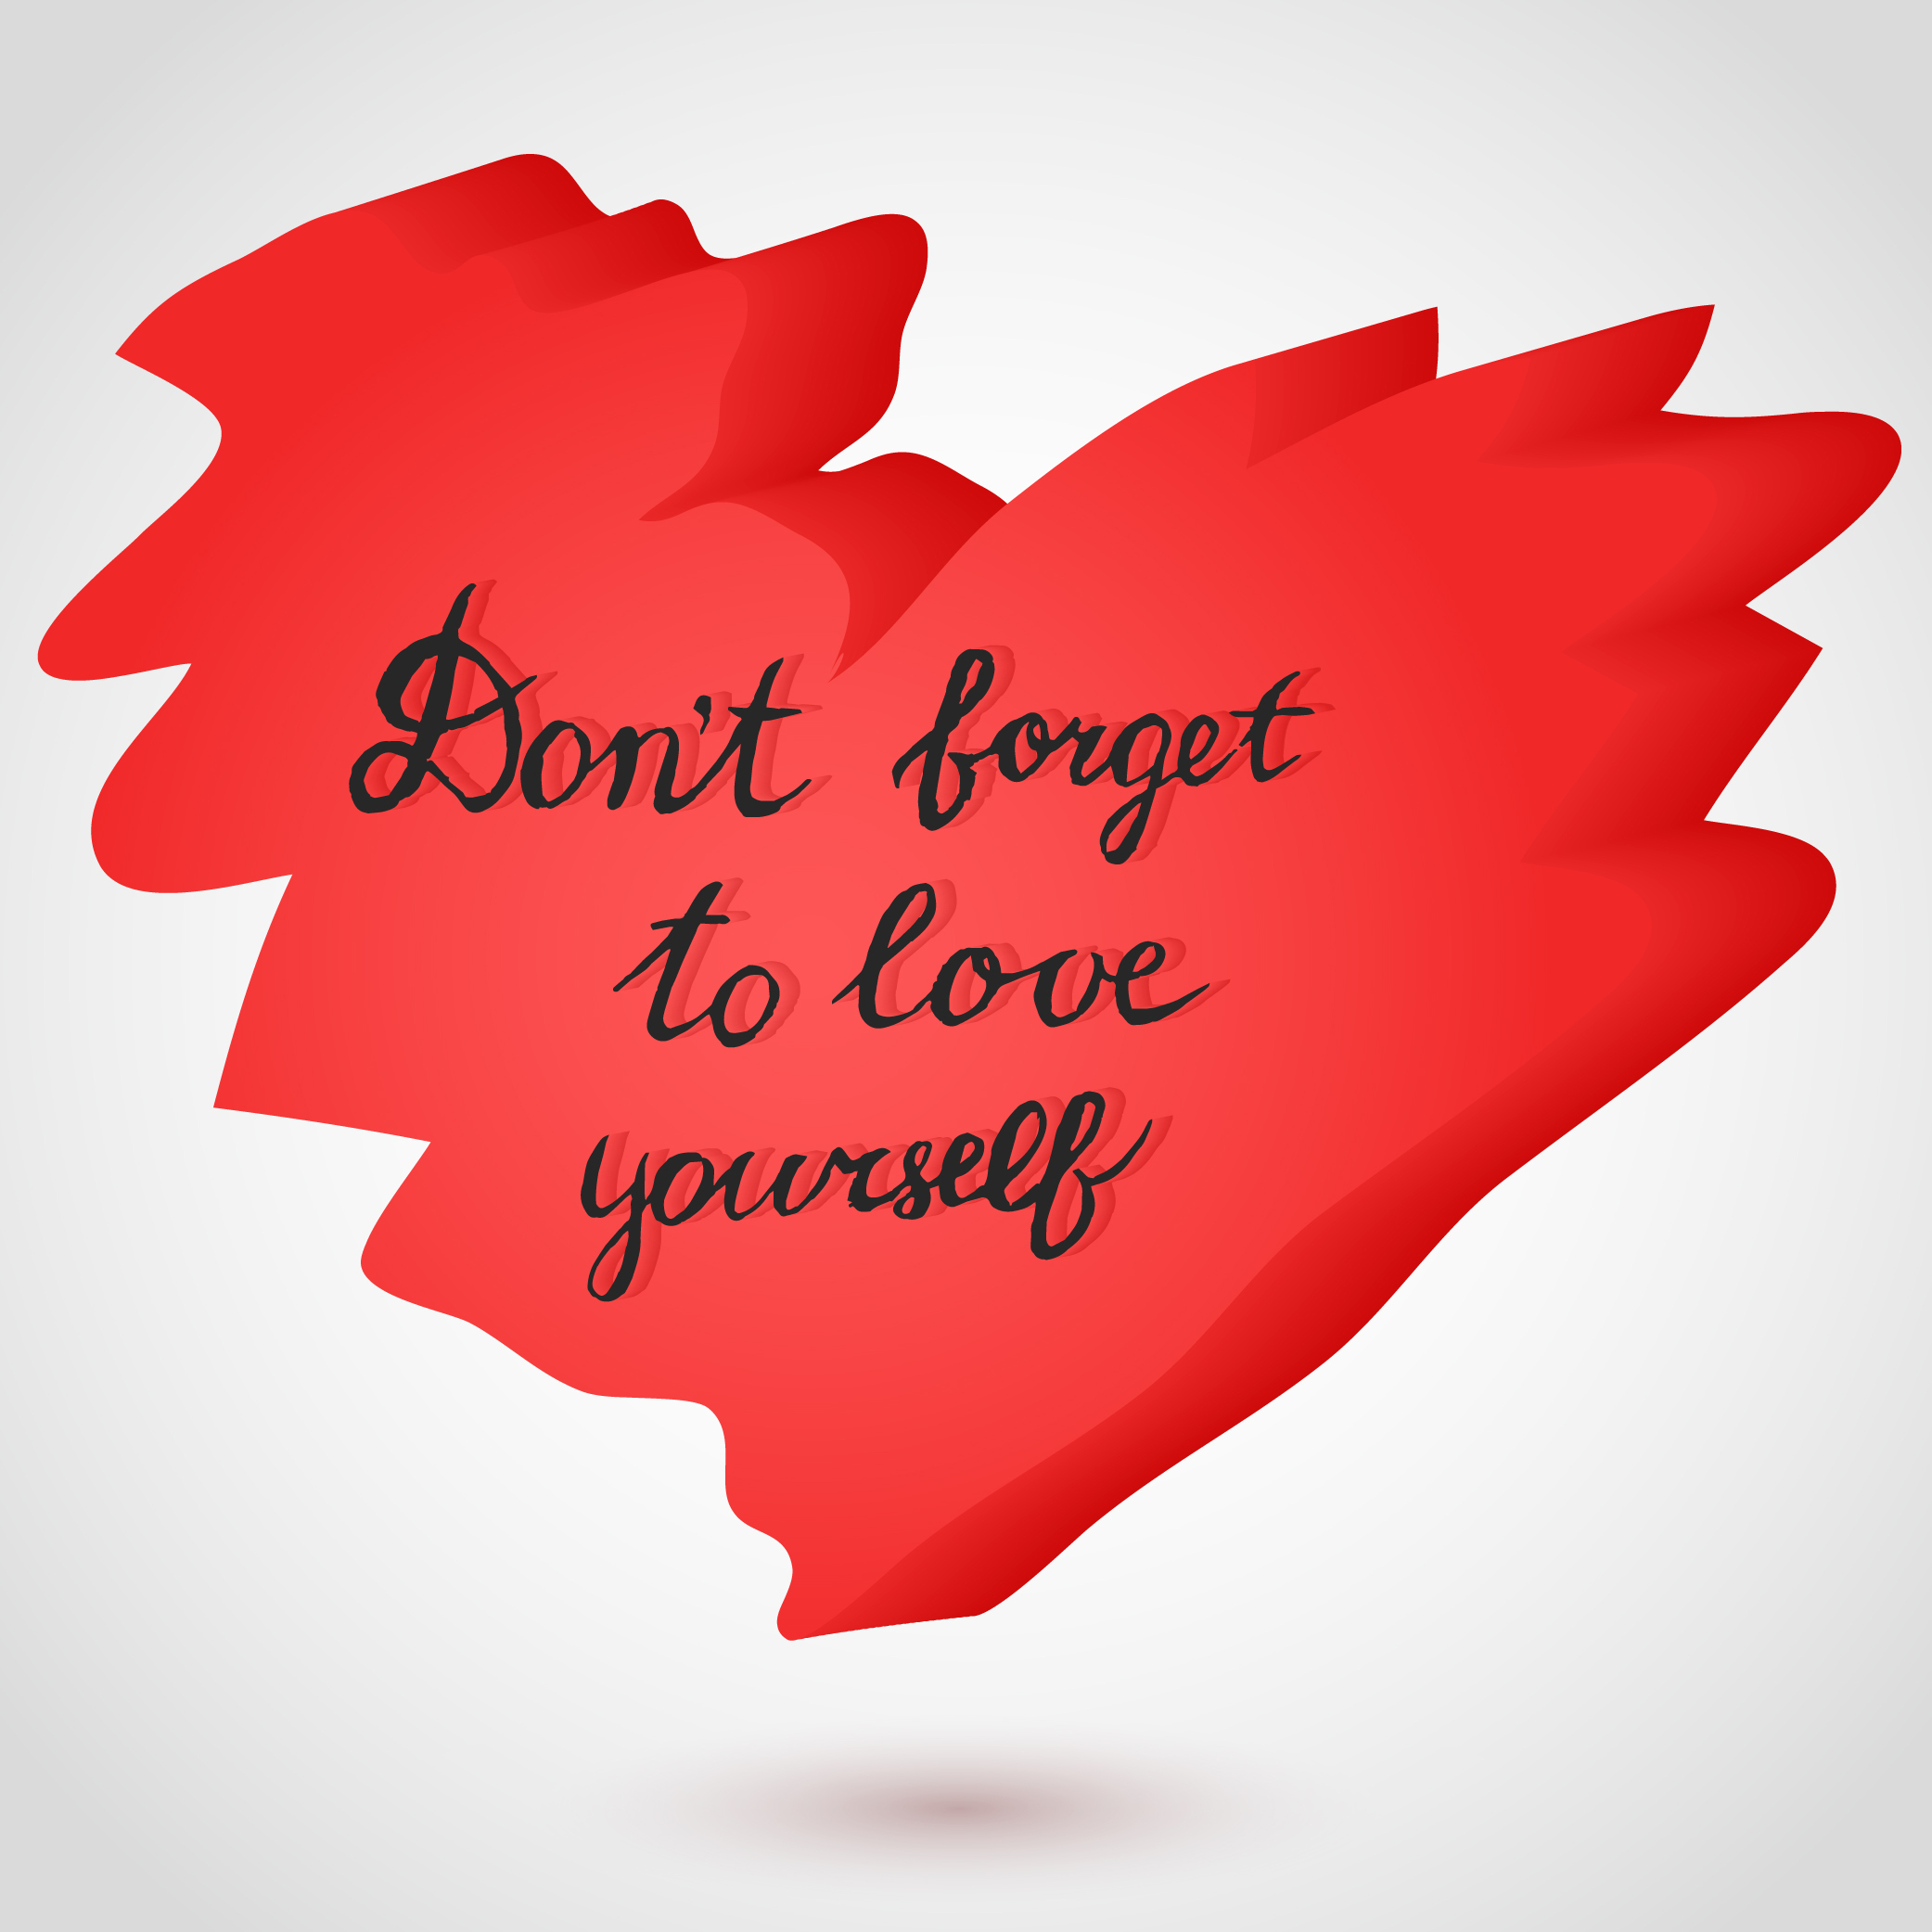 Loving Yourself:  The Commandment That's Rarely Talked About…